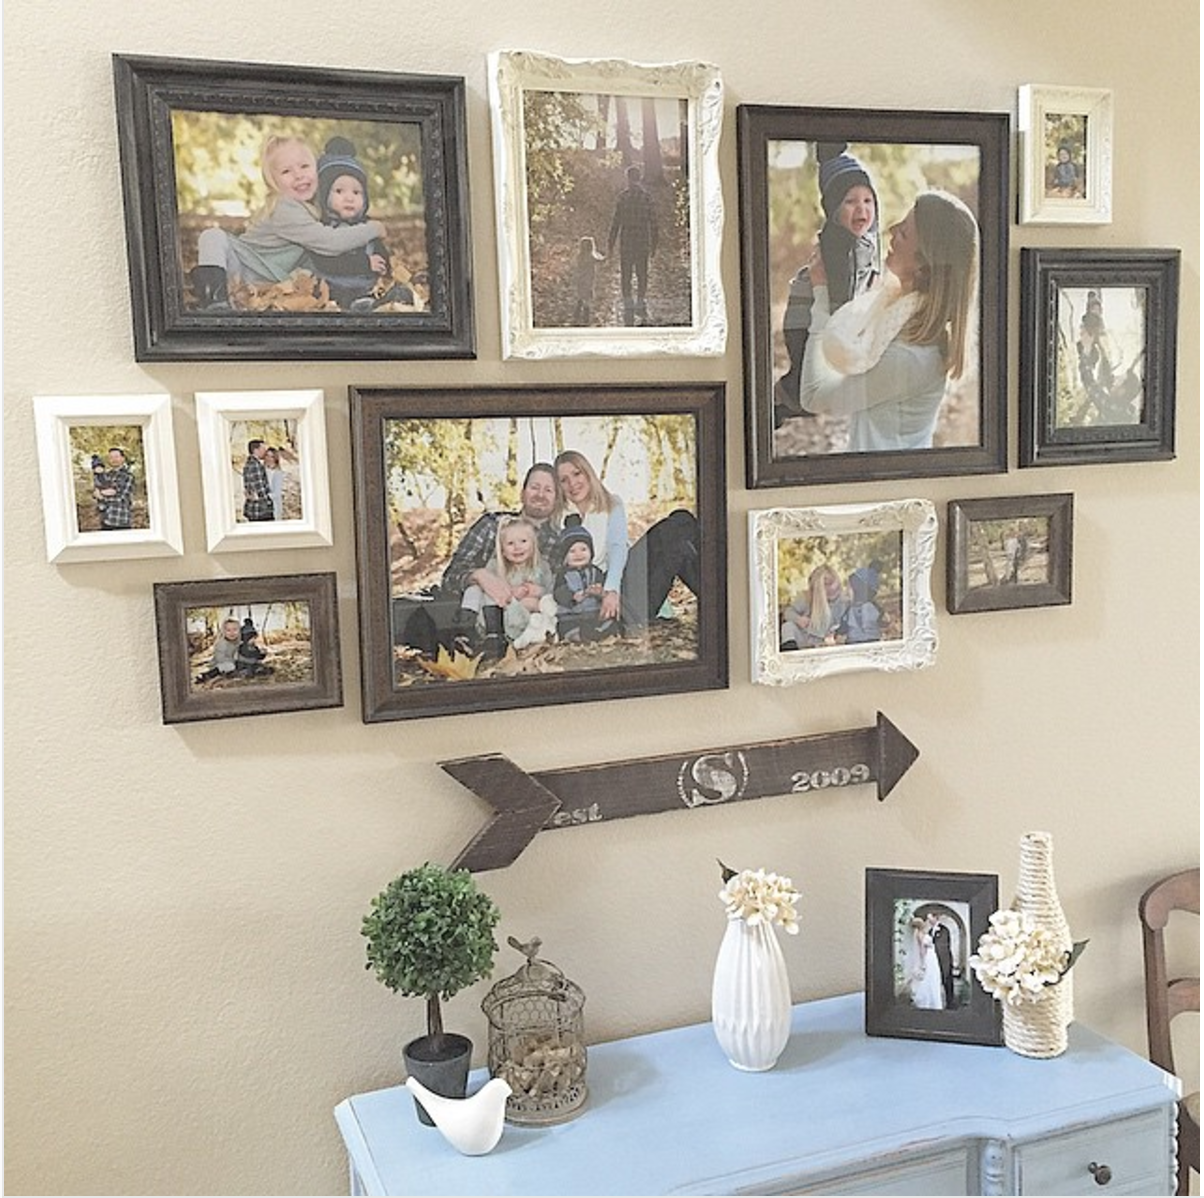 25 must-try rustic wall decor ideas featuring the most amazing intended  imperfections XUIRZAV